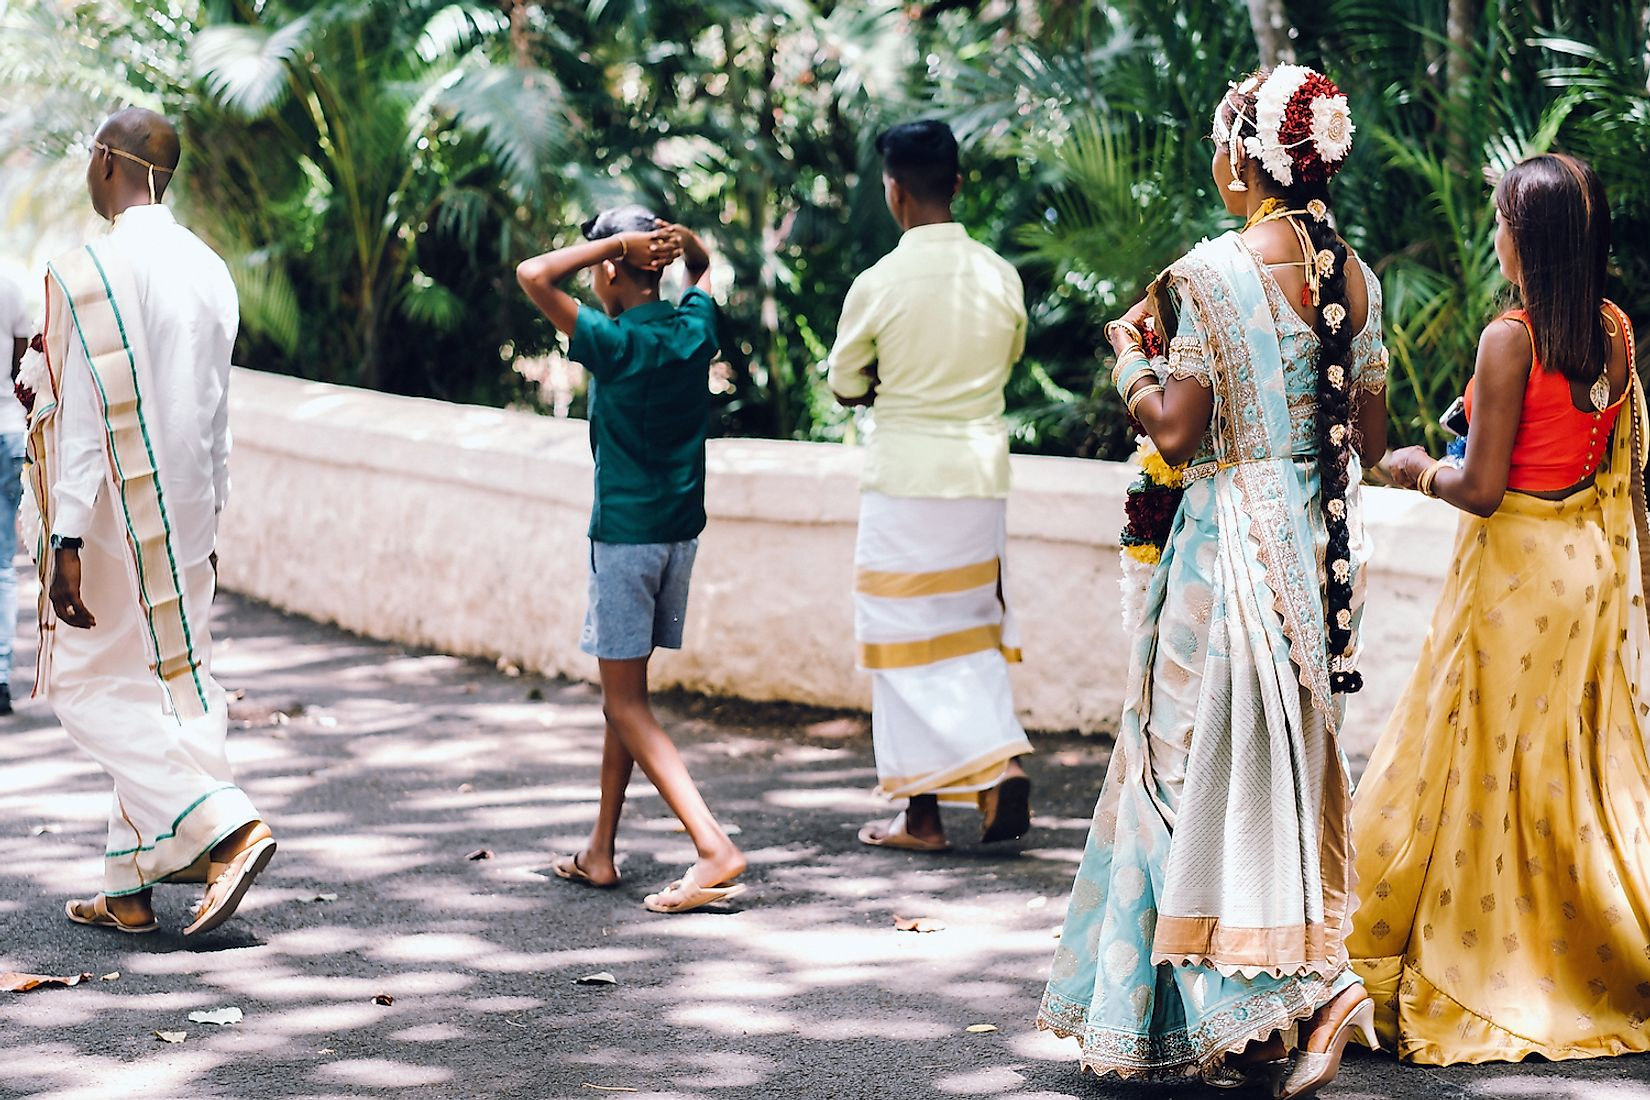 A traditional wedding of local Indian-origin people in Mauritius. Image credit: Lobachad/Shutterstock.com